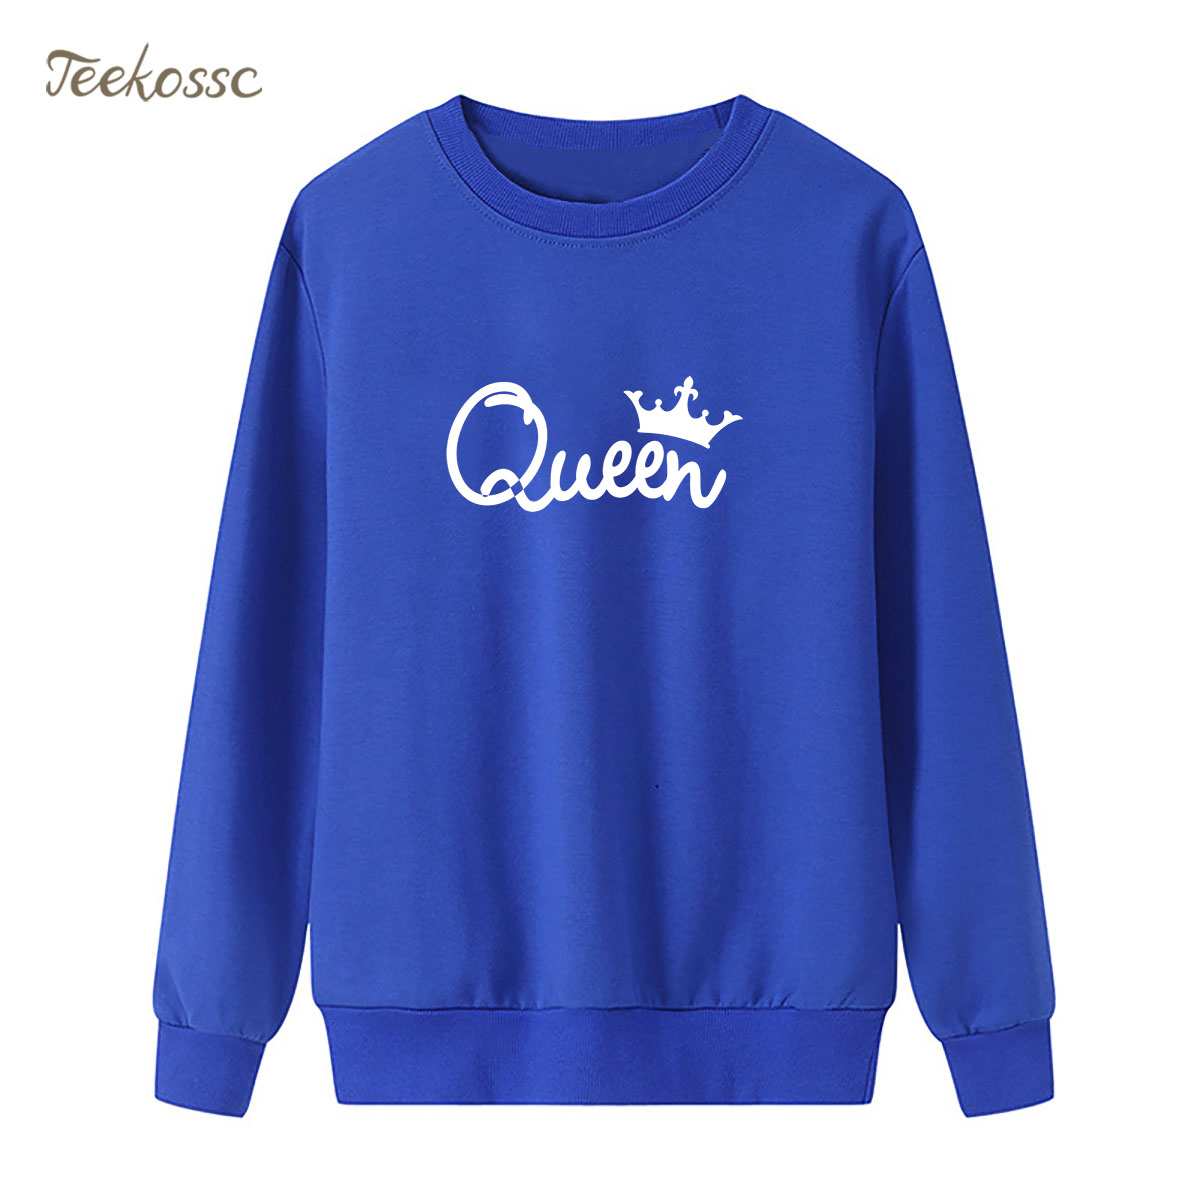 King Queen Sweatshirt Blue Casual Hoodie 2018 New Brand Winter Autumn Women Lady Pullover Fleece Warm Loose Hipster Streetwear